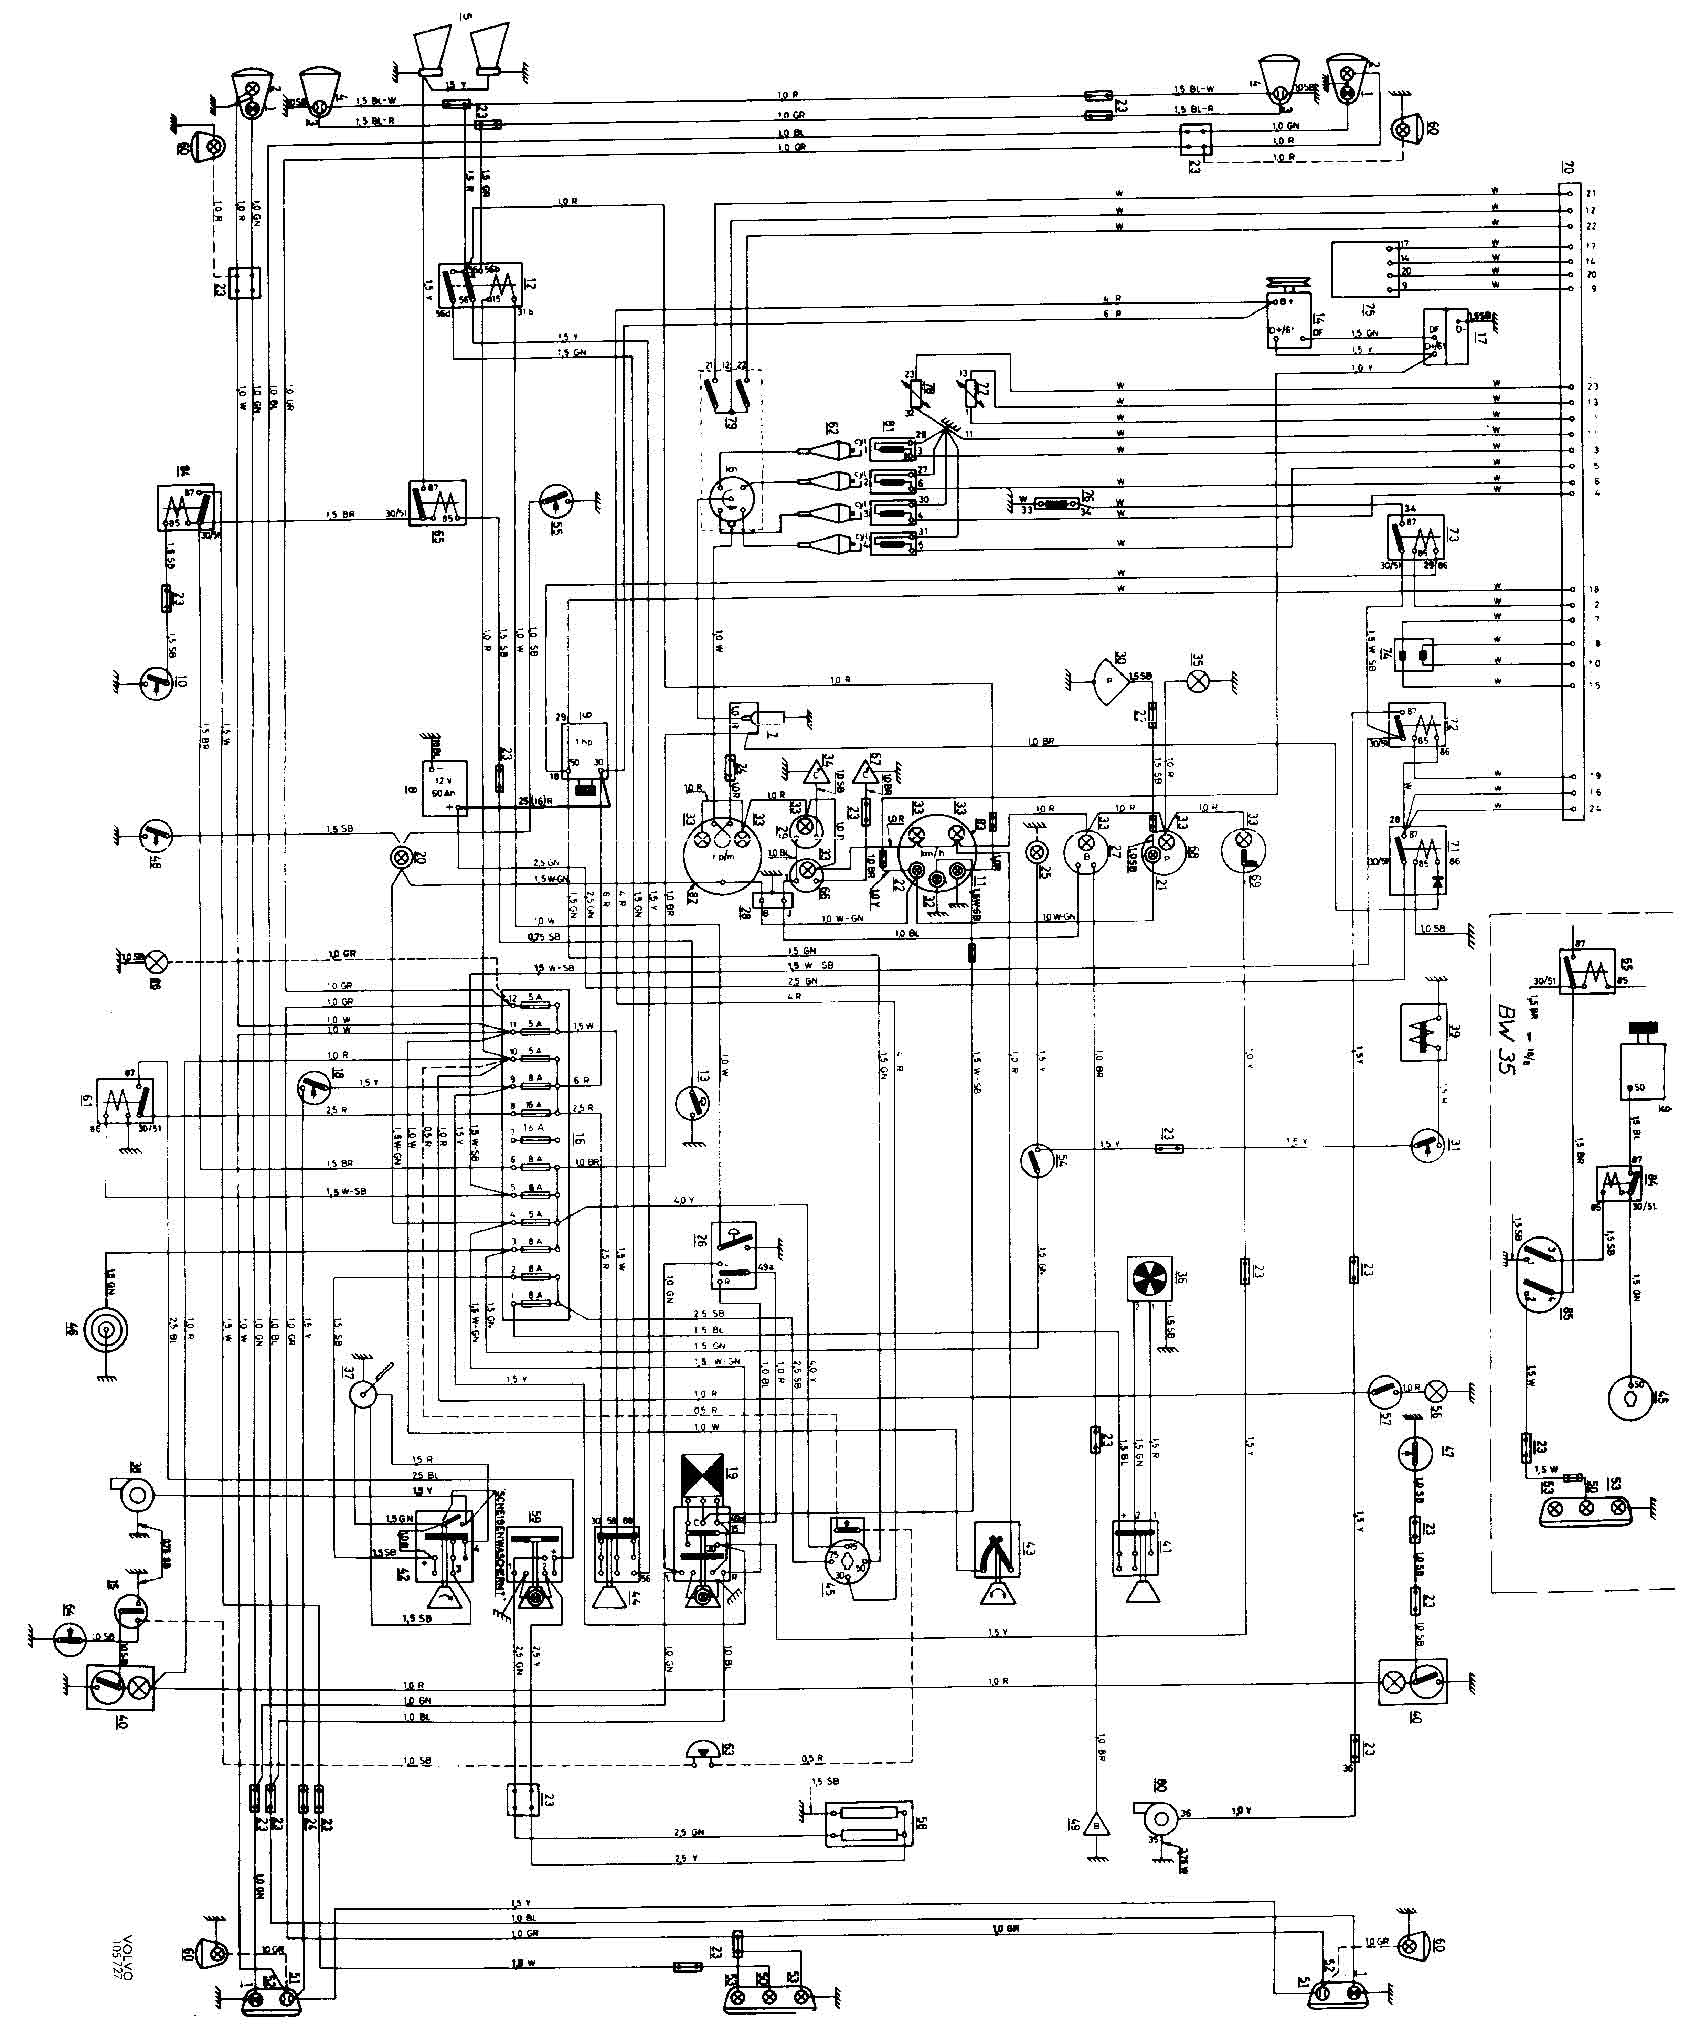 1800E Wiring Diagram sw em service notes moon tachometer wiring diagram at crackthecode.co